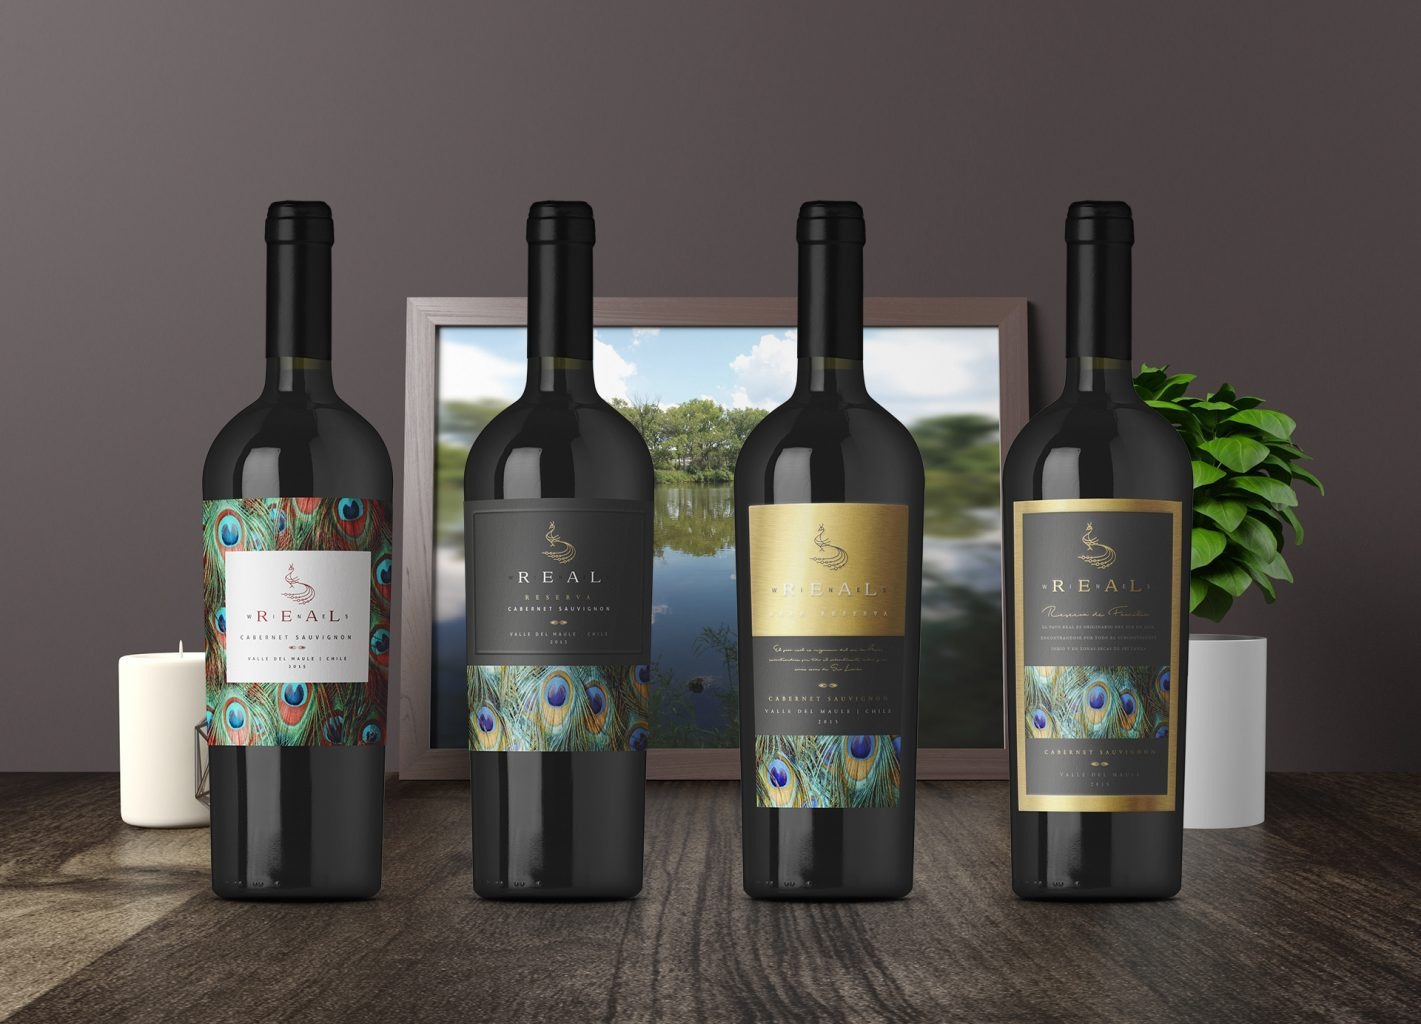 Diseño de etiqueta de vino, packaging, wine label design, 葡萄酒标签设计